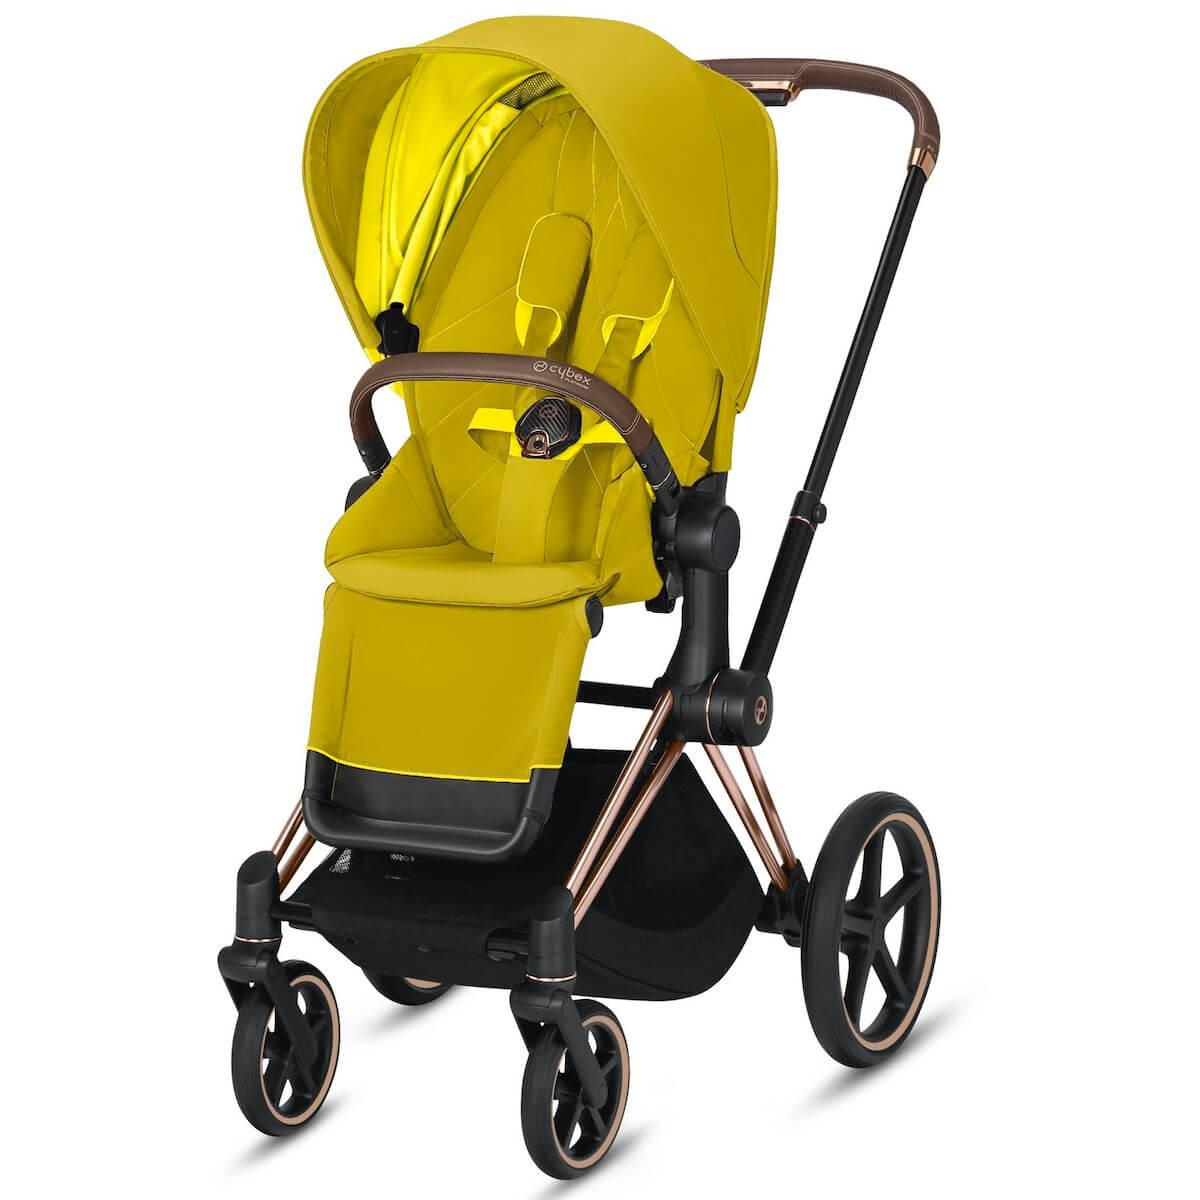 Assise-habillage poussette PRIAM Cybex Mustard yellow-yellow